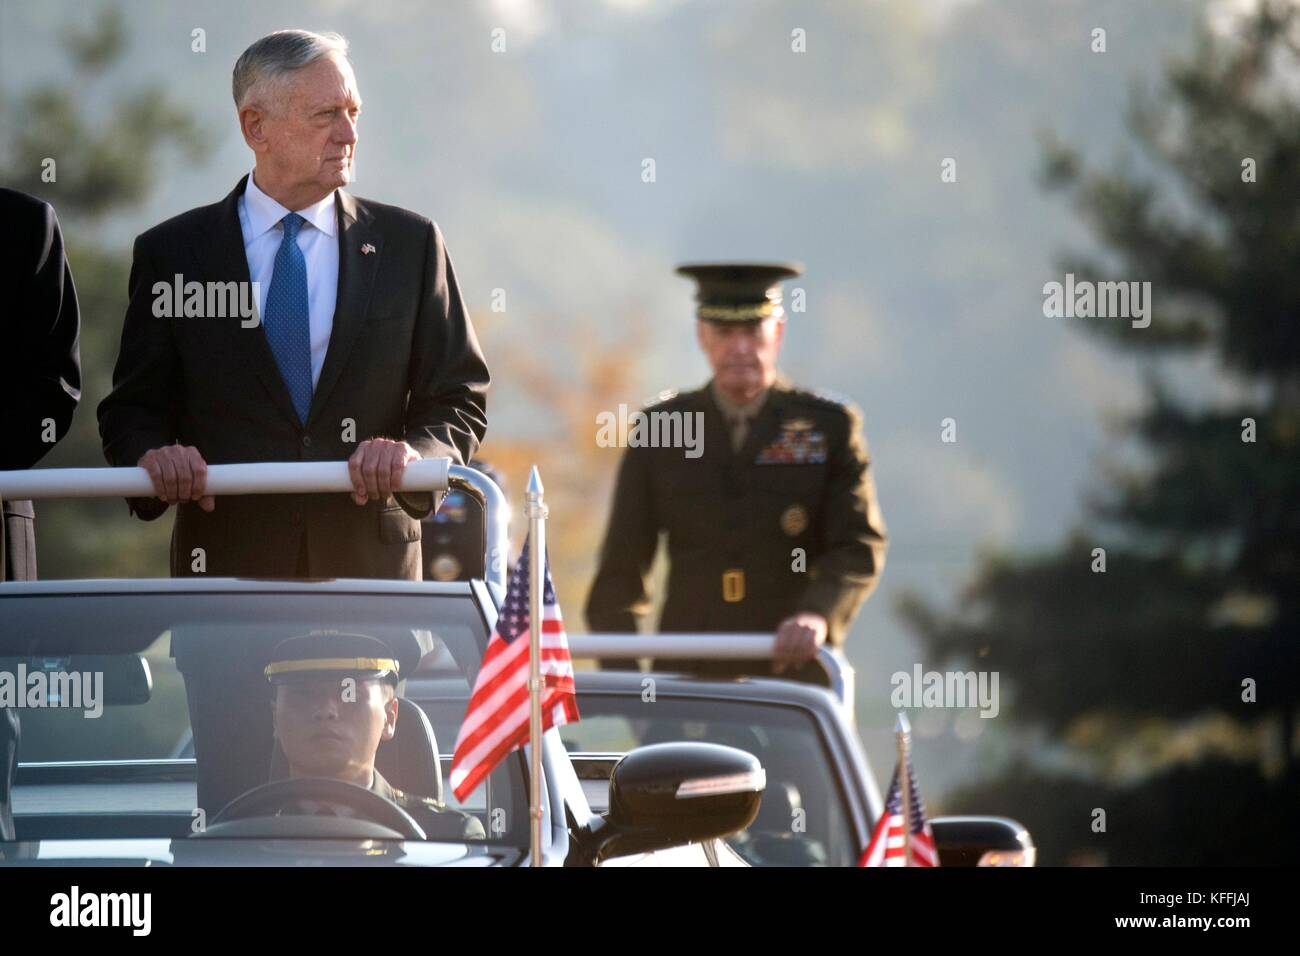 U.S Secretary of Defense James Mattis, left, and U.S. Chairman of the Joint Chiefs Gen. Joseph Dunford during the Stock Photo